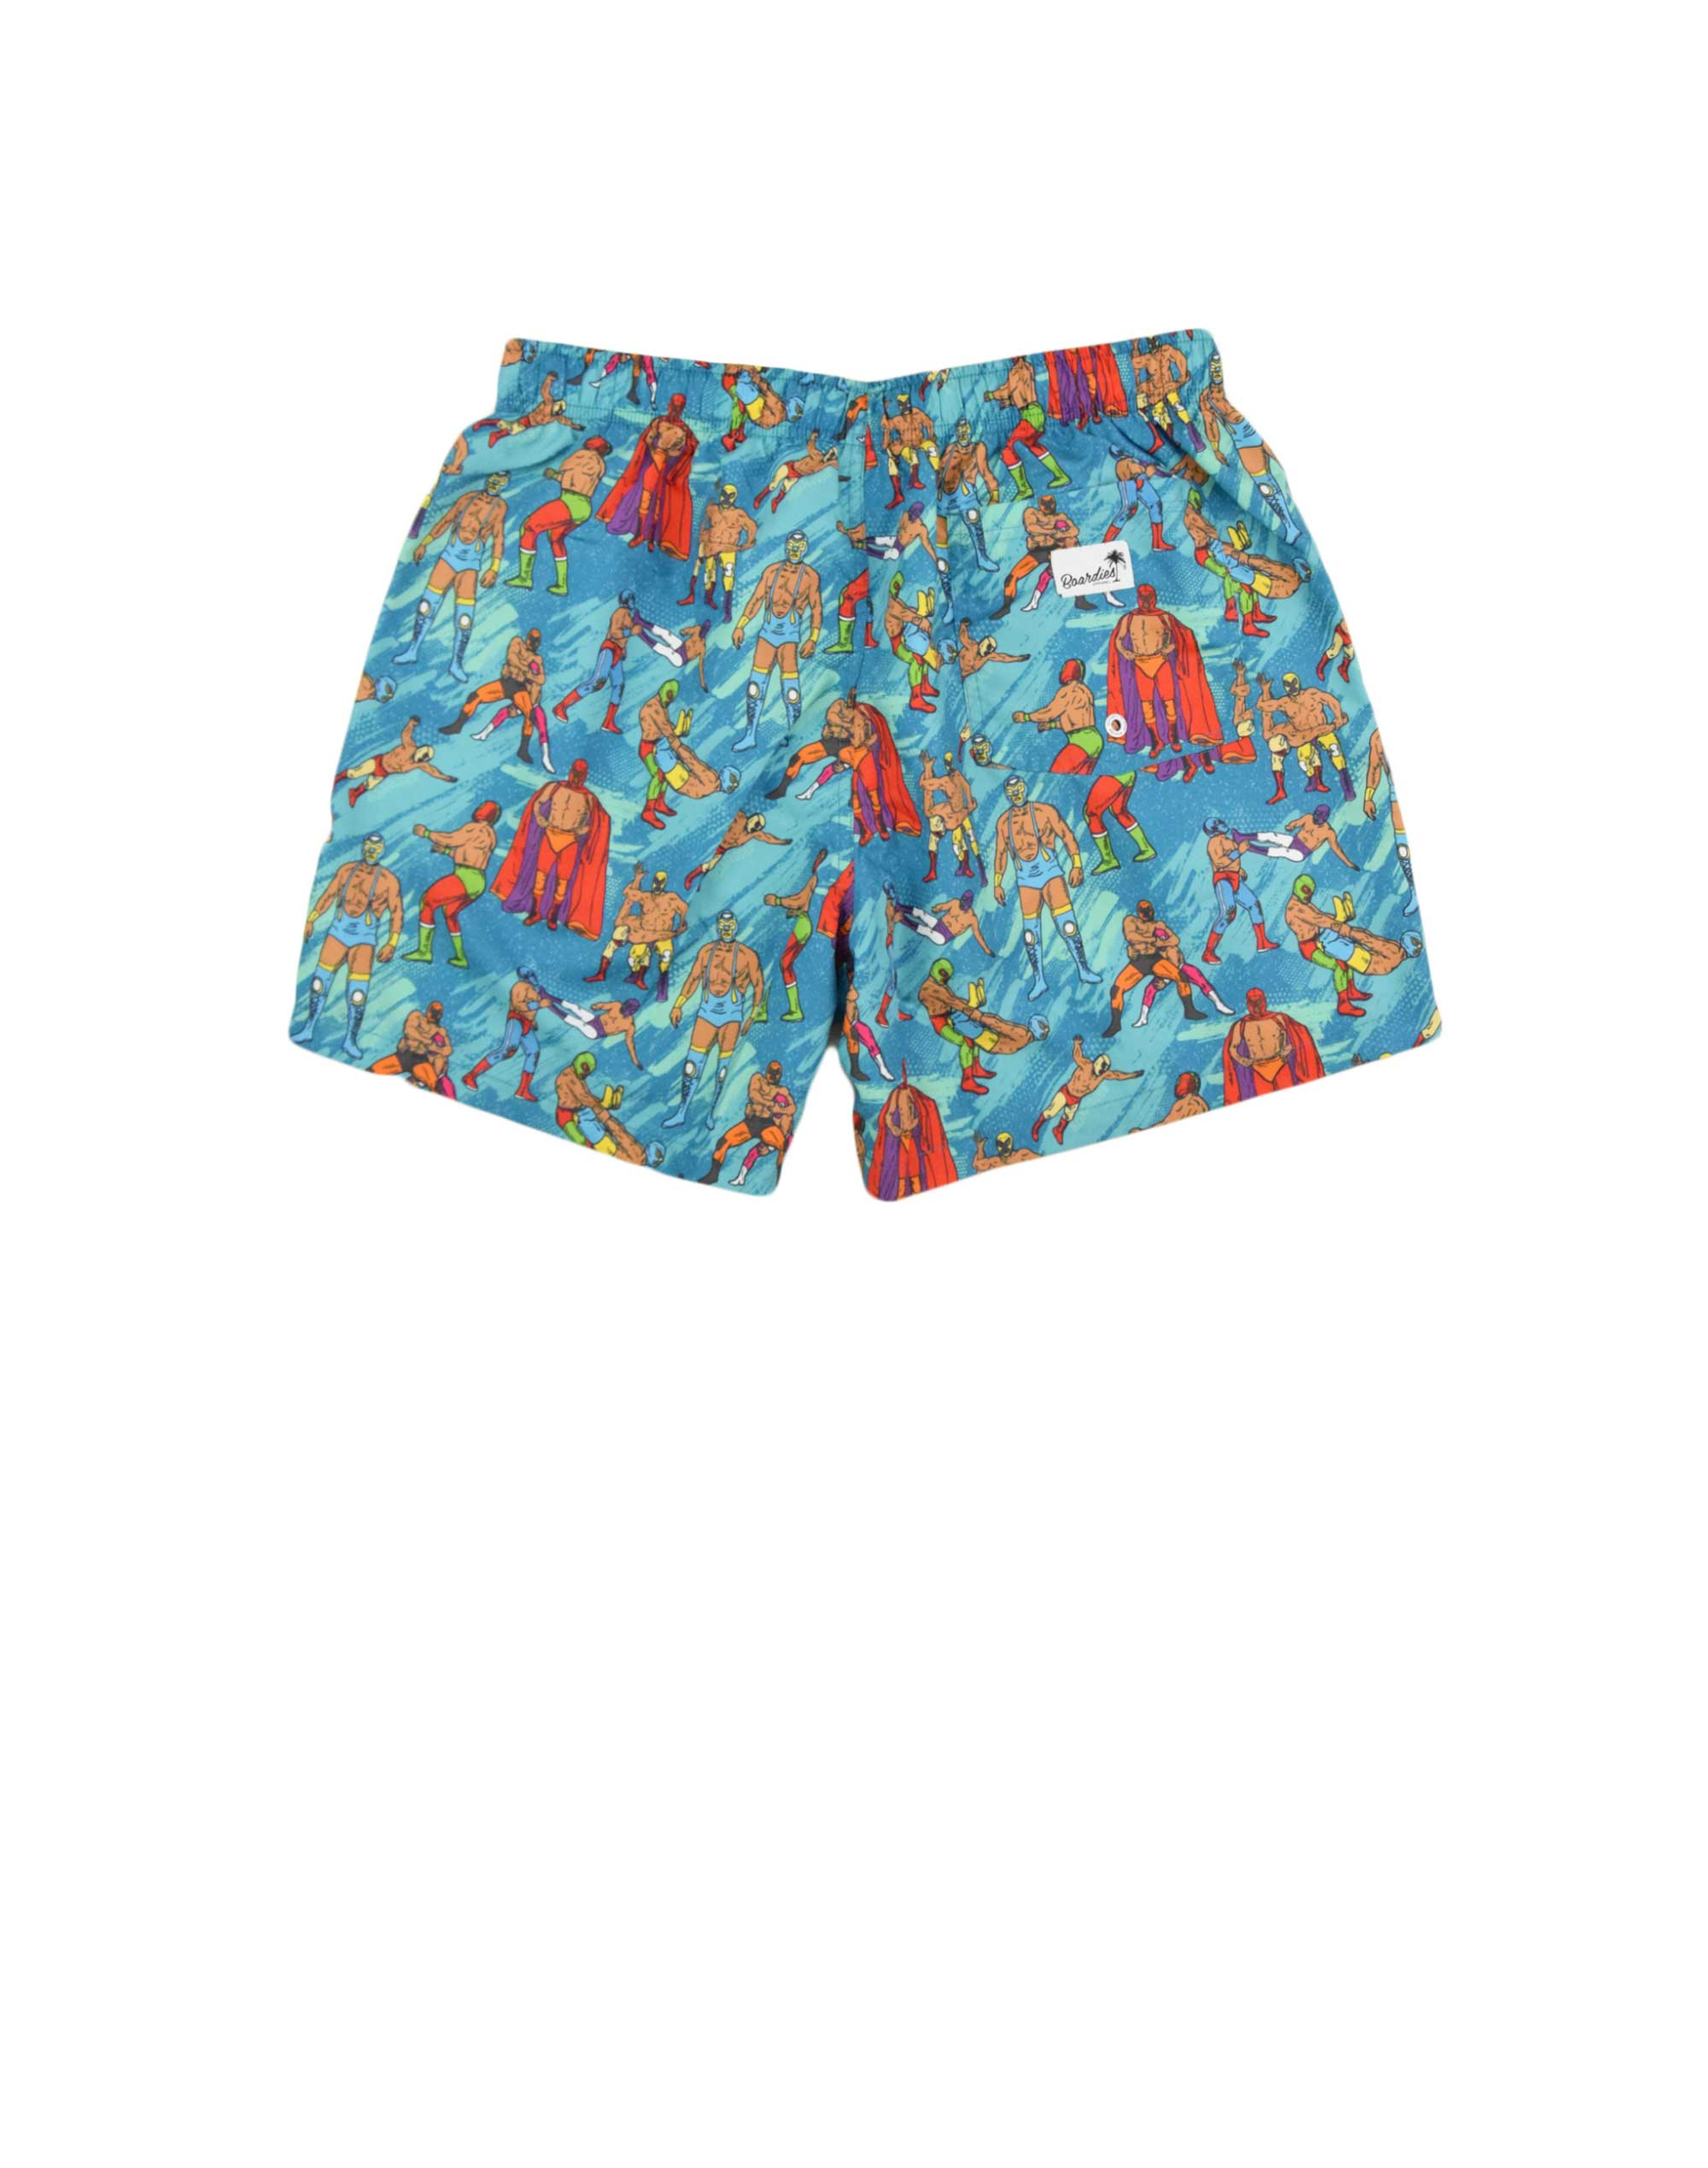 Boardies Mexican Wrestlers Swim Shorts (BS523M) Teal